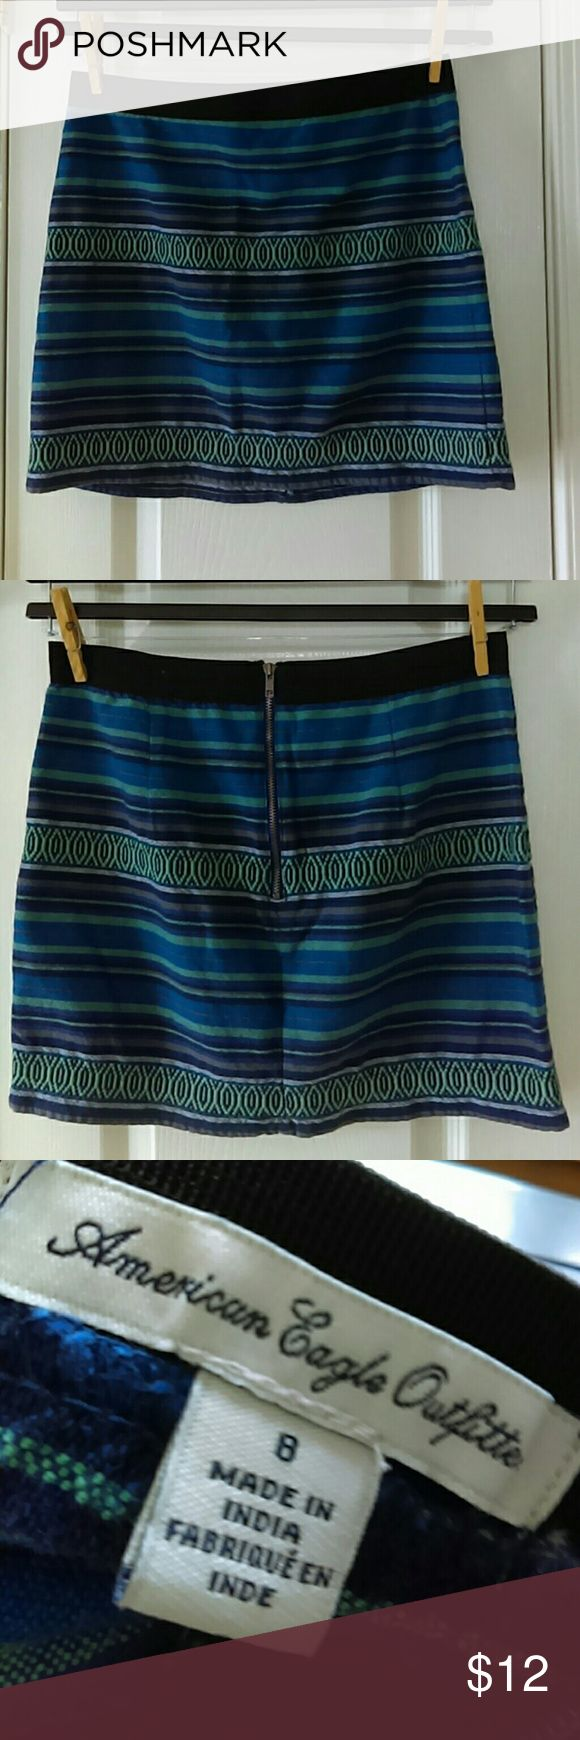 American Eagle Outfitter mini skirt American Eagle Outfitter mini skirt with elastic band waist exposed zipper back cute skirt can be worn with black leggings and boots for a cool winter look Length approximately 15 inches American Eagle Outfitters Skirts Mini